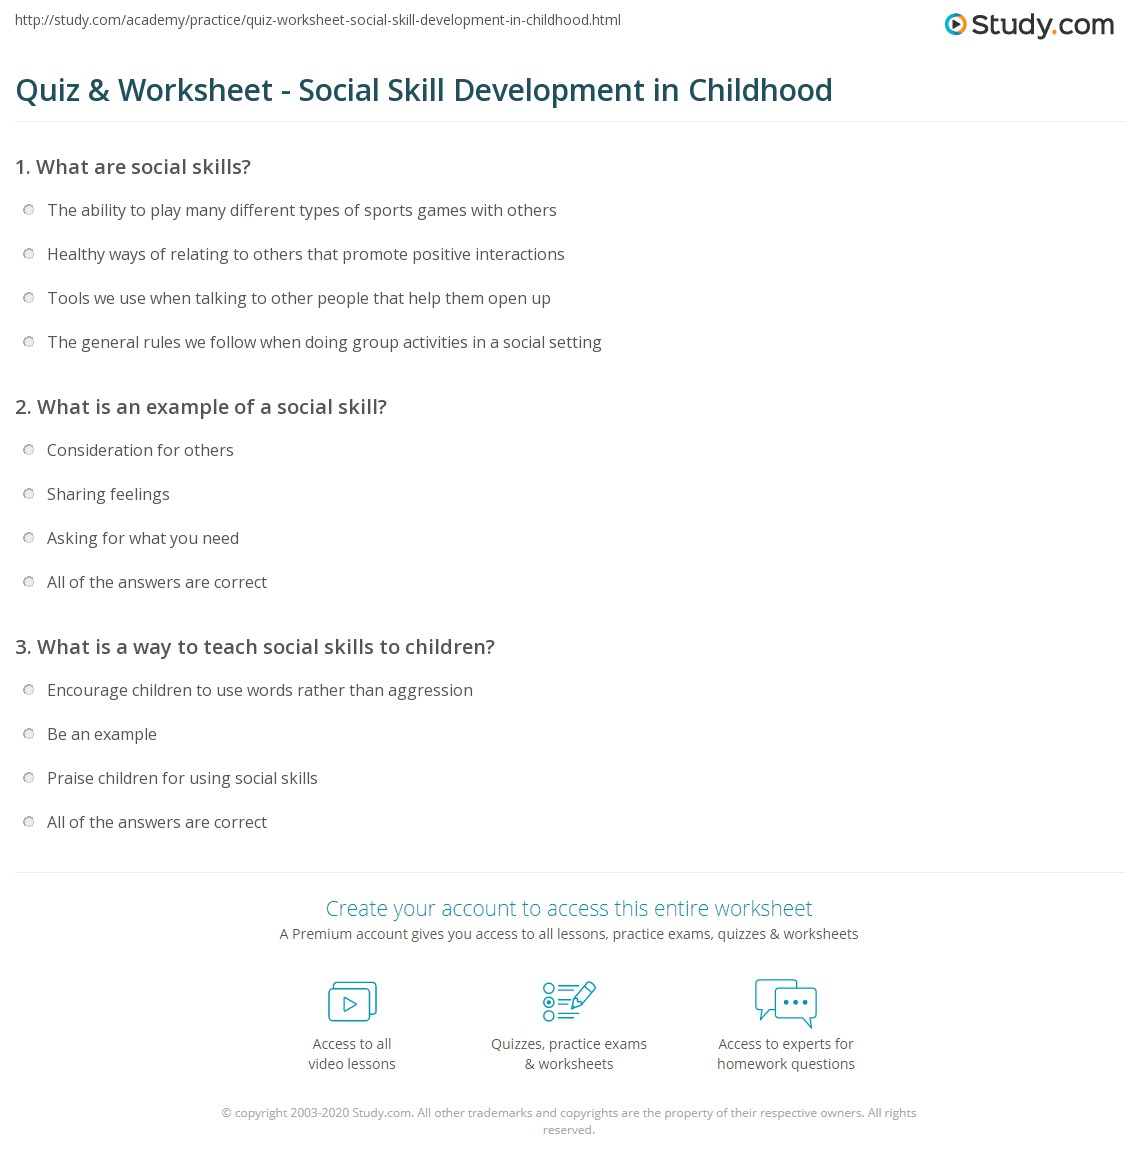 Quiz & Worksheet - Social Skill Development in Childhood | Study.com